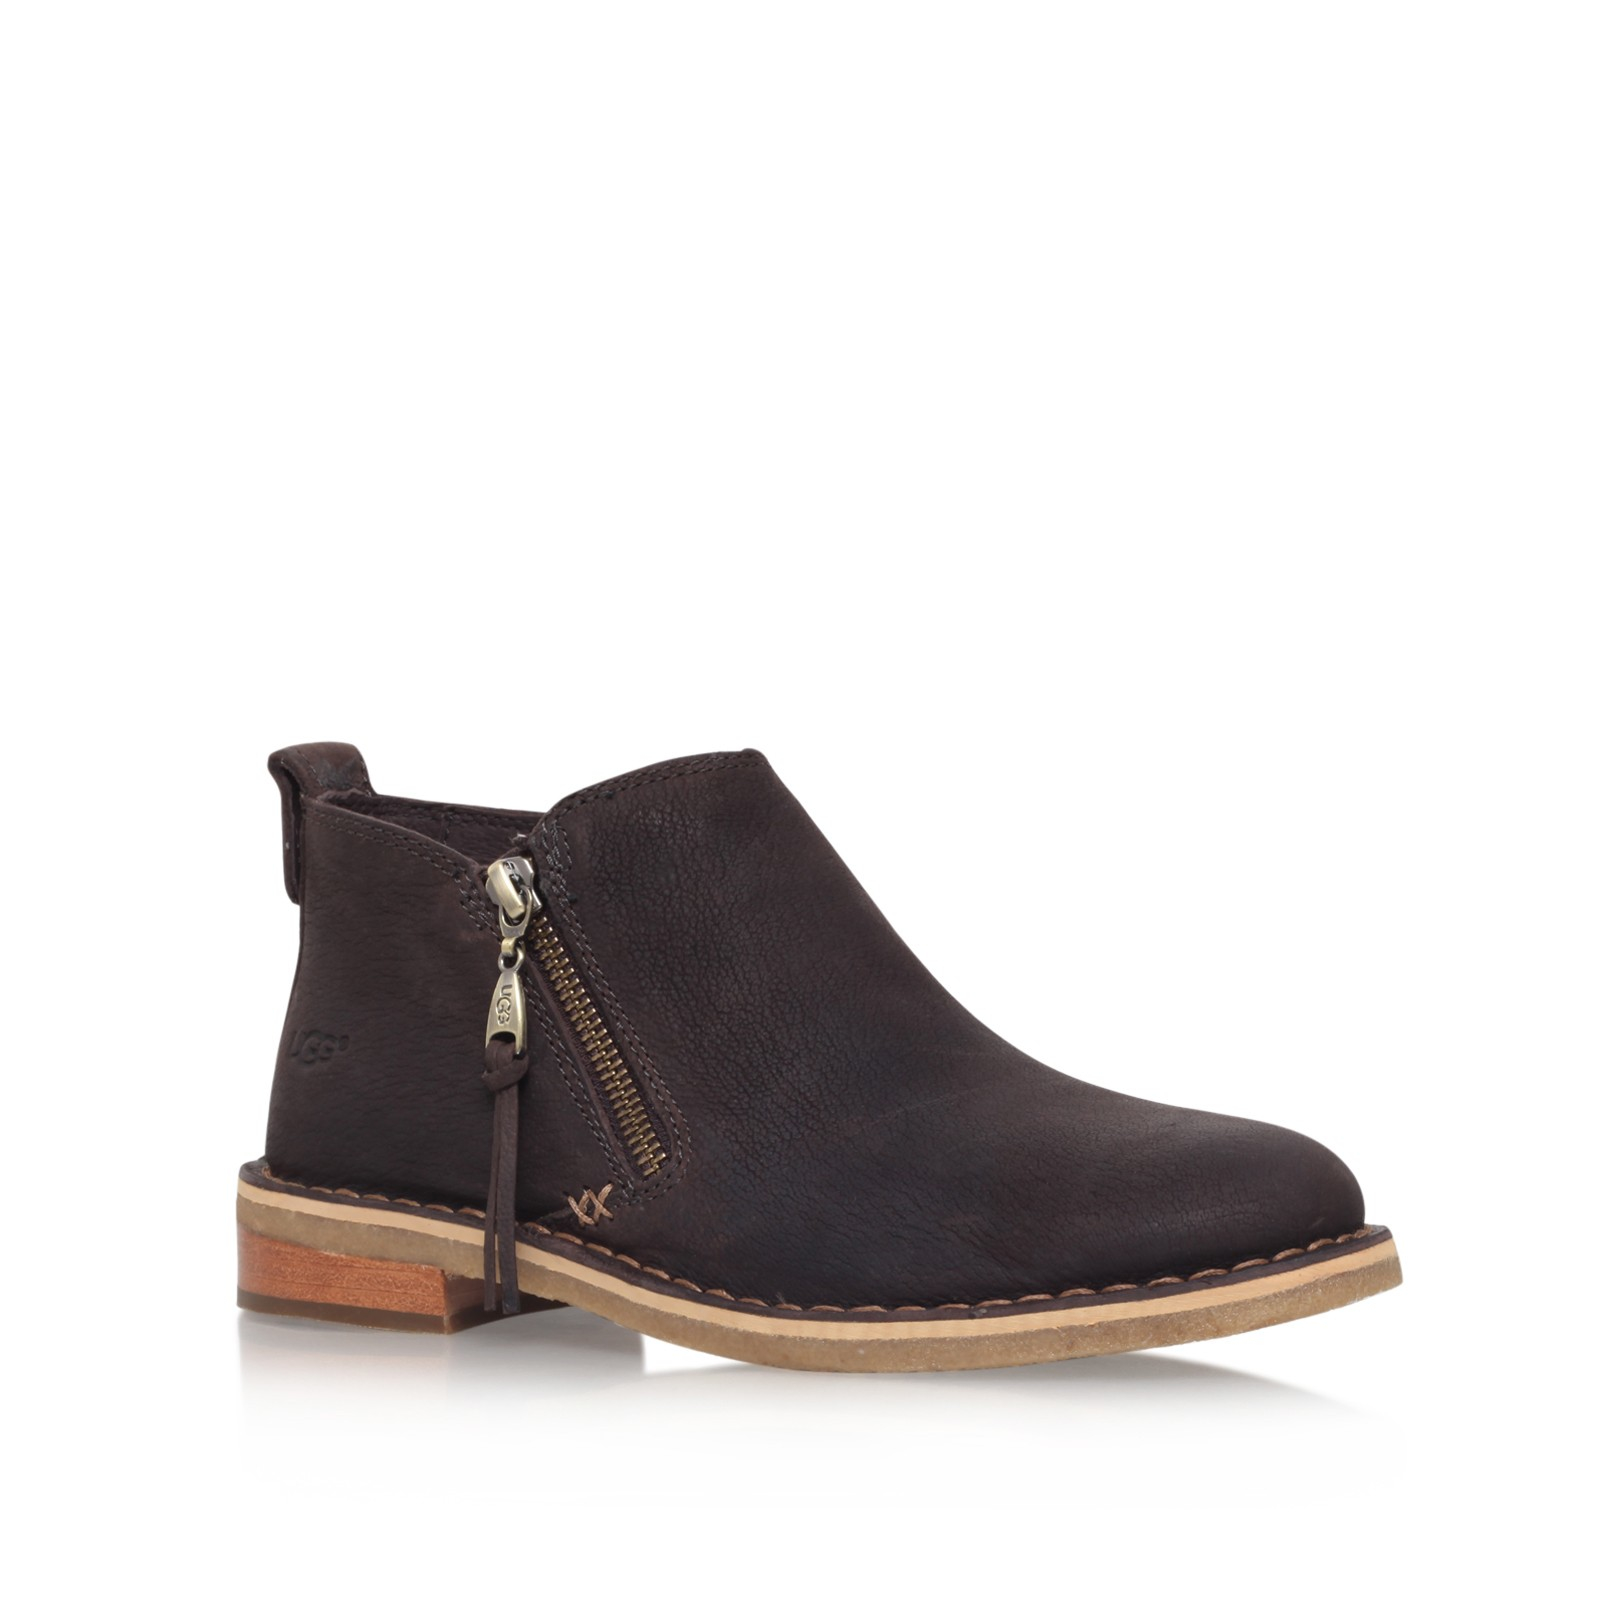 Ugg Clementine In Brown Lyst